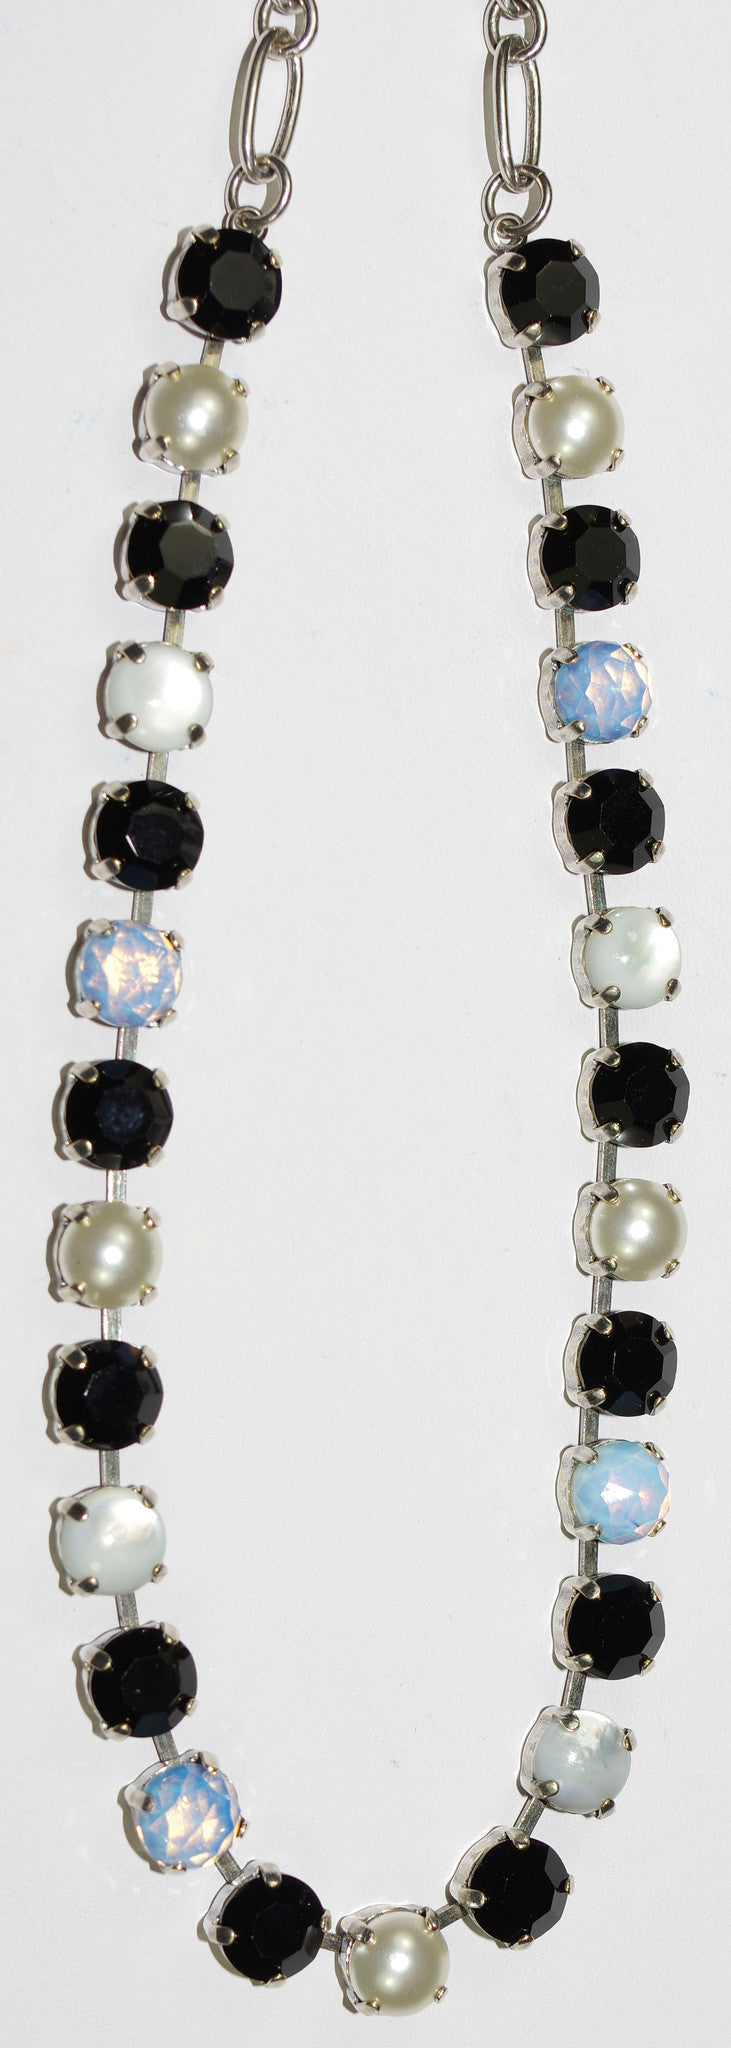 "MARIANA NECKLACE BLACK/WHITE BETTE: black, white, pearl, blue stones in silver setting, 18"" adjustable chain"